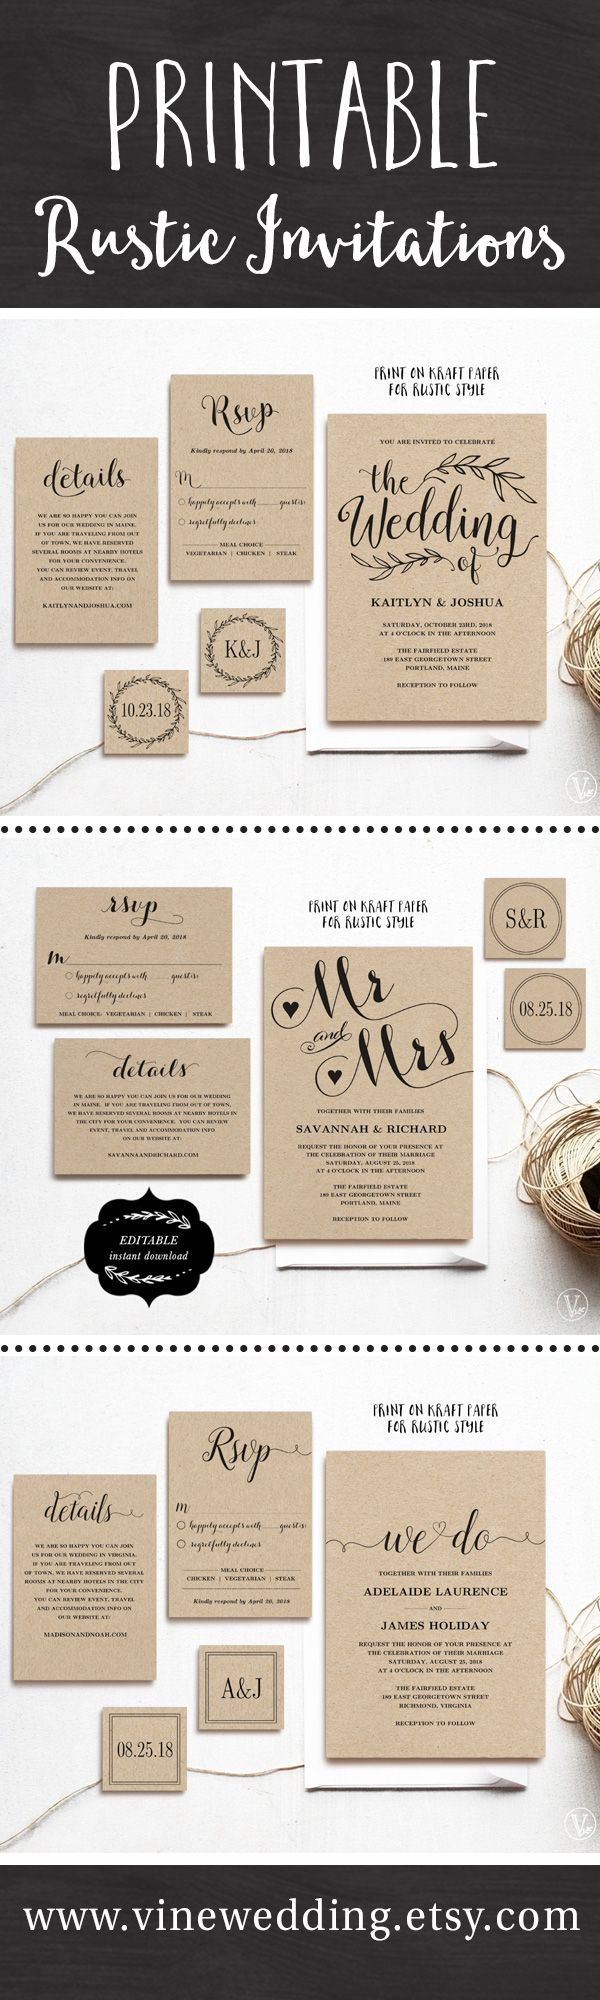 templates for wedding card design%0A Beautiful rustic wedding invitations  Editable instant download templates  you can print as many as you